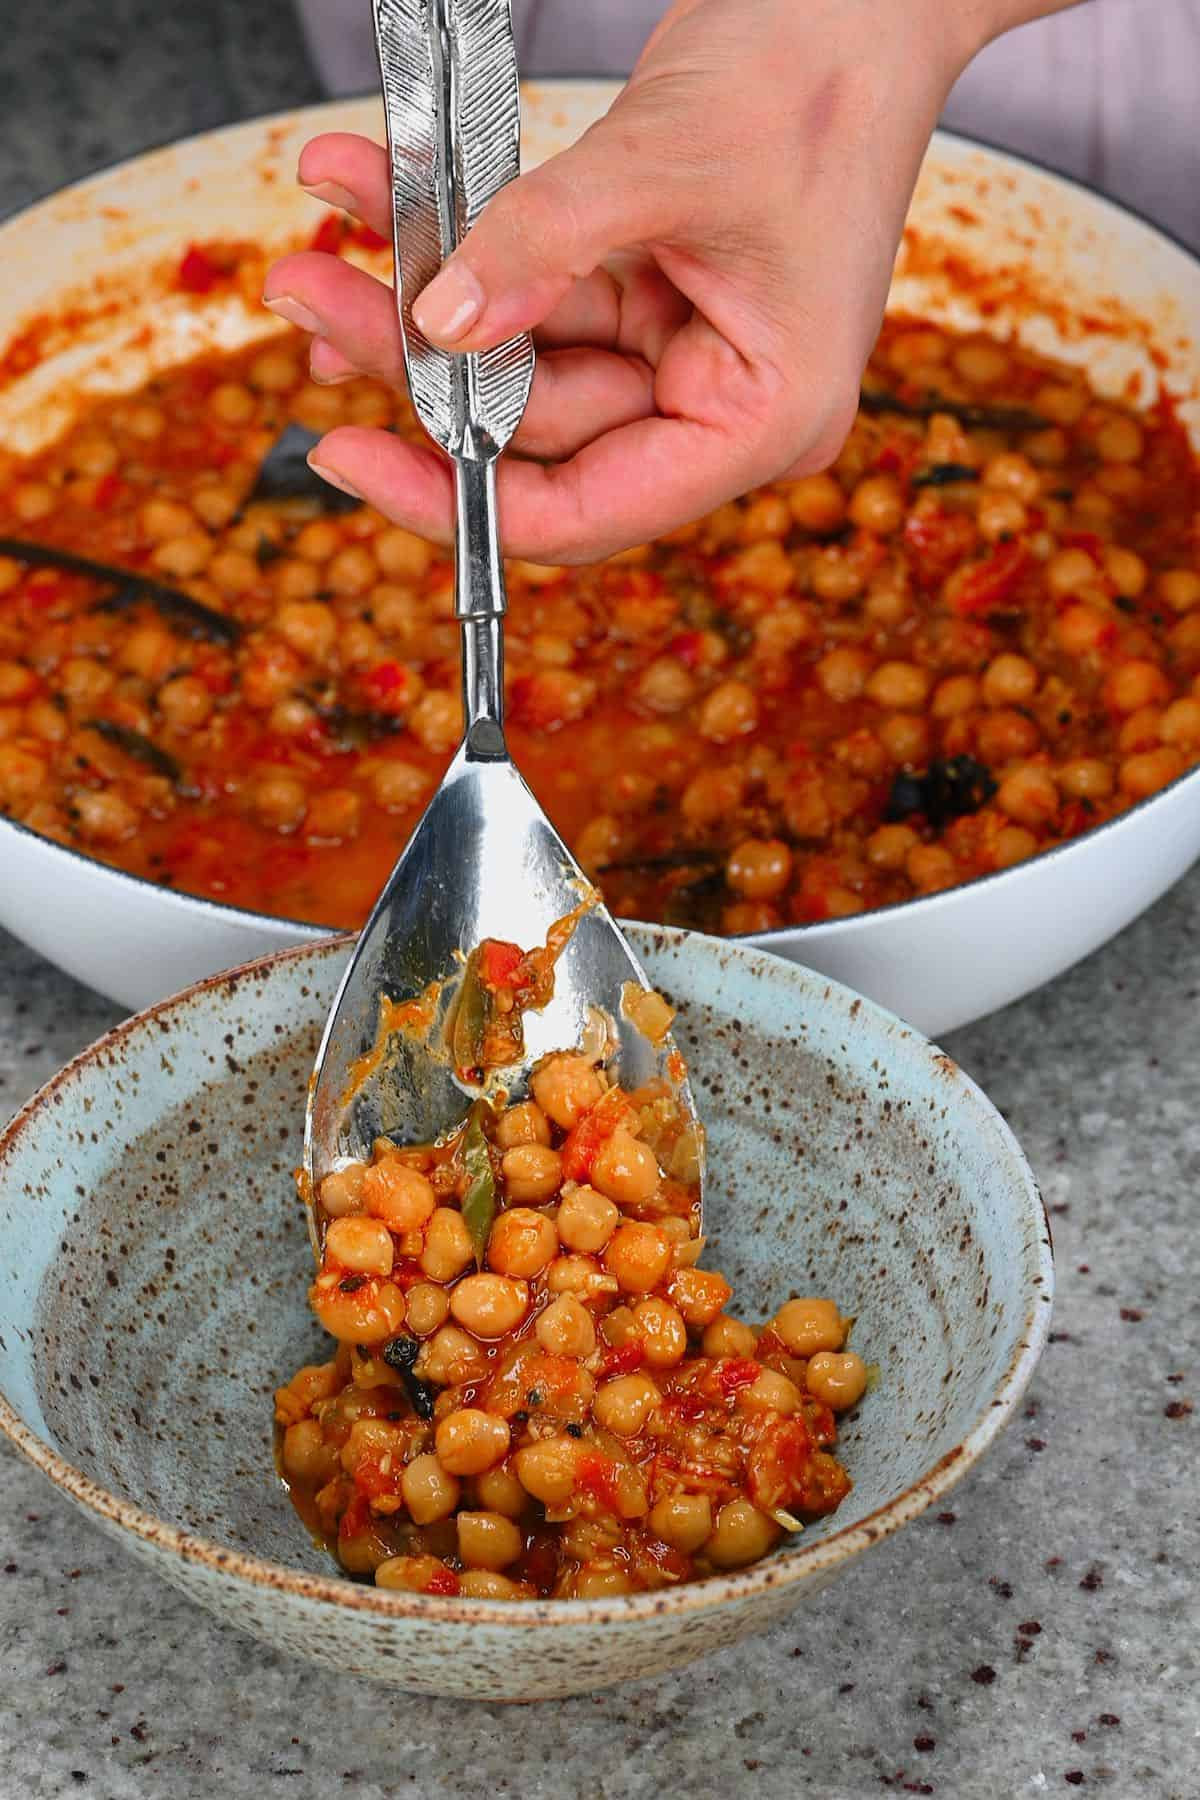 Serving chickpea curry in a bowl